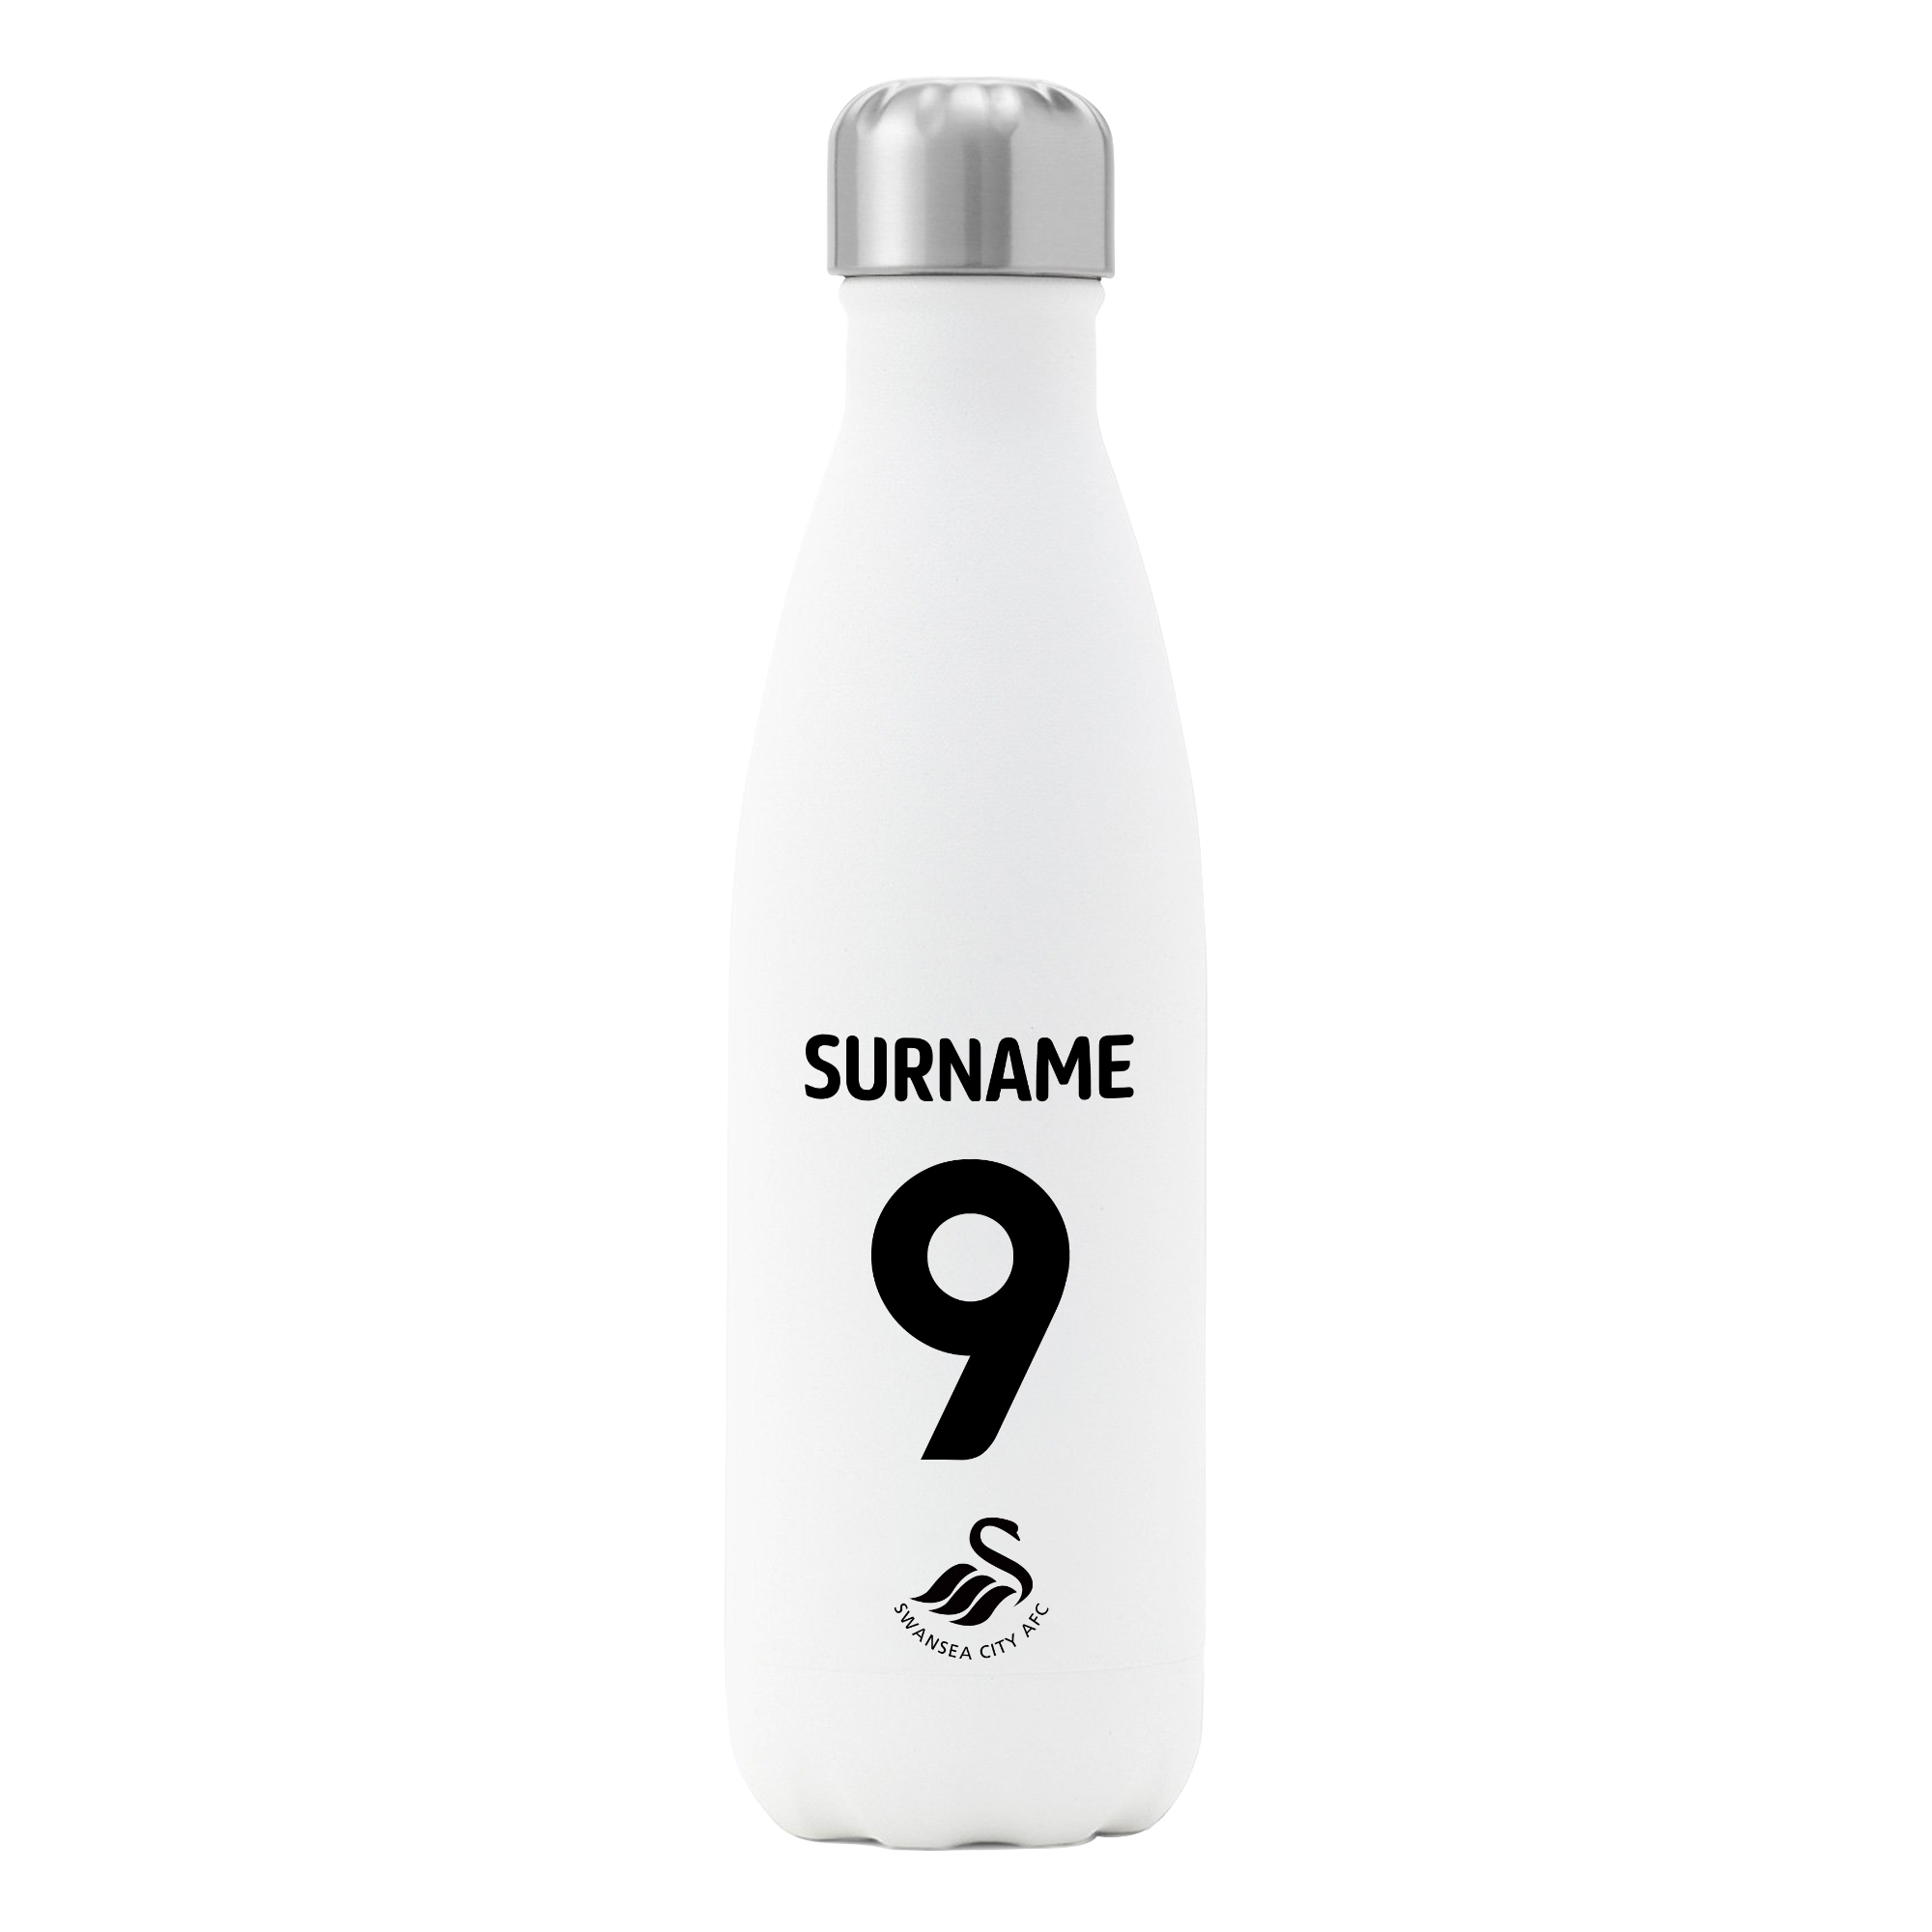 Swansea City AFC Back of Shirt Insulated Water Bottle - White